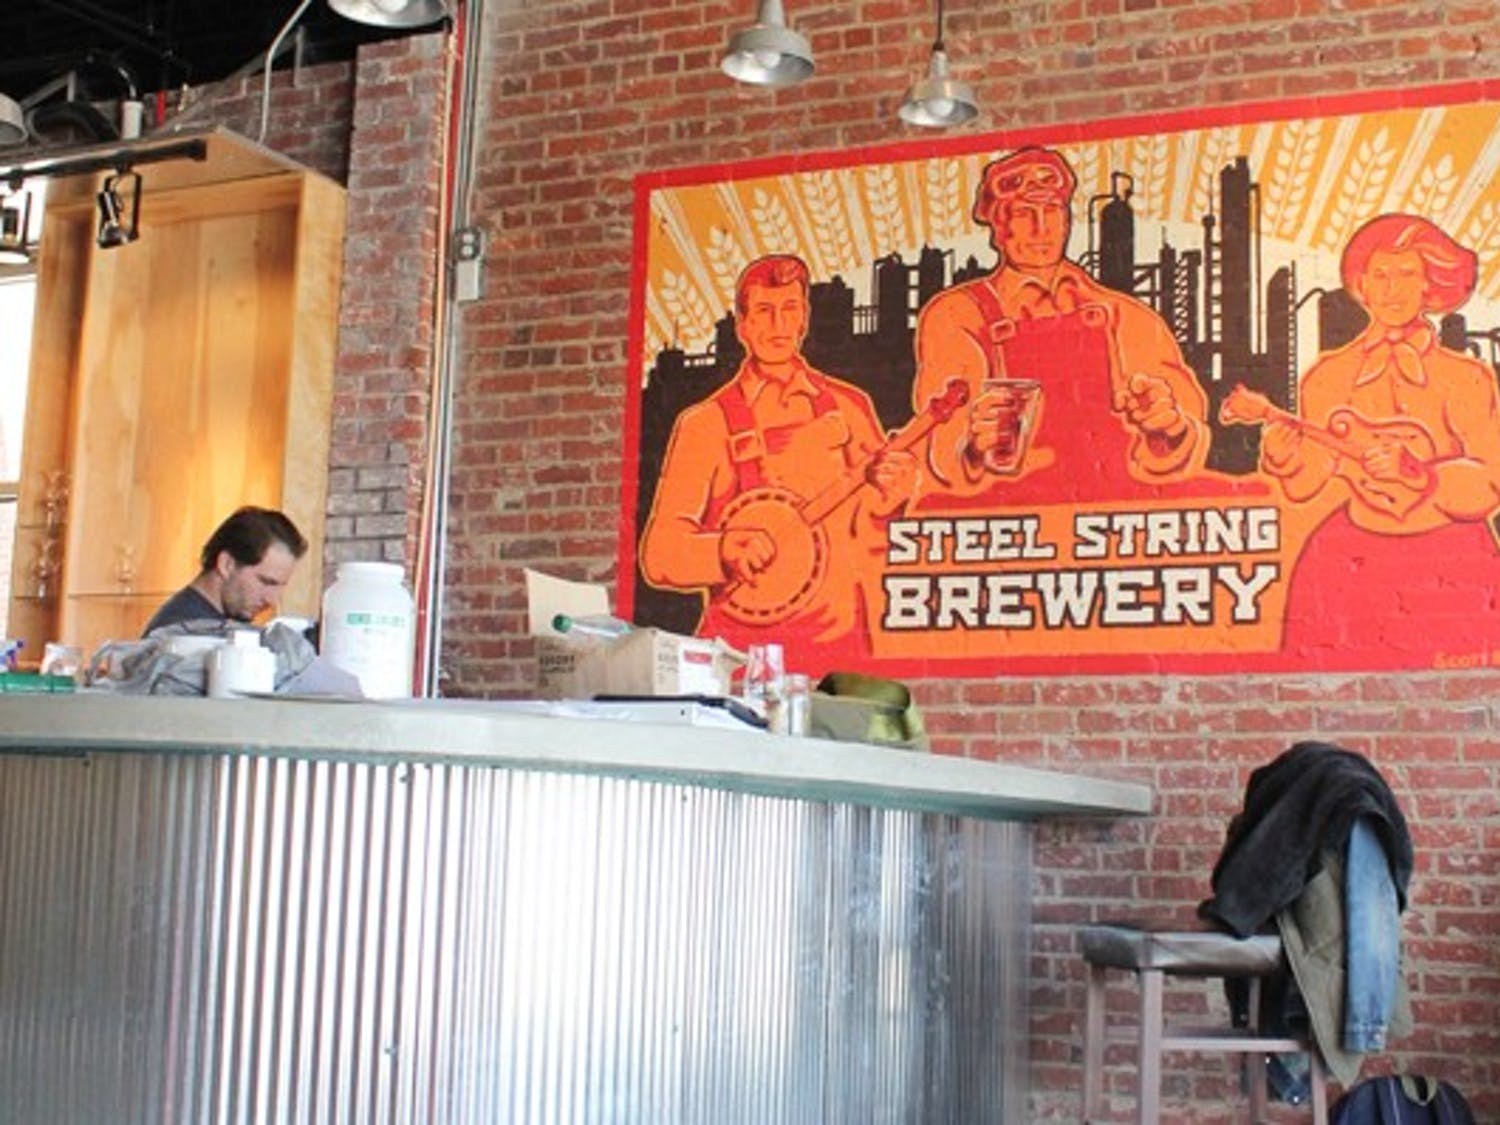 """Eric Knight (blue plaid shirt and glasses), Hoopla Czar, and Andrew Scharfenberg (not in any pictures), Logistics Czar, work in Steel String Brewery in Carrboro, which they are opening. """"Yeah, we decided not to be boring,"""" Knight said in regards to their position titles."""